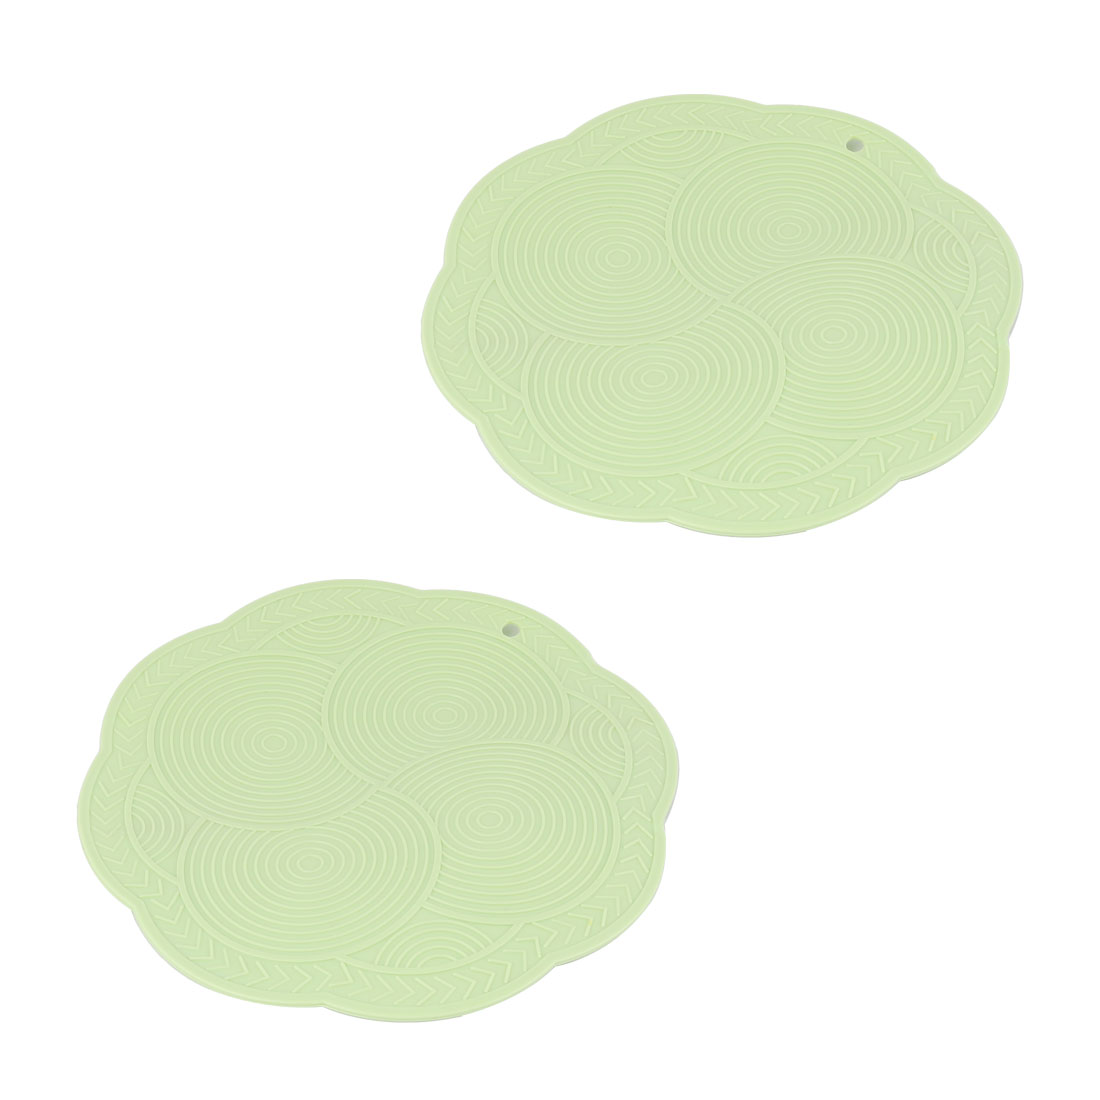 Household Kitchenware Tableware Rubber Water Heat Insulation Resistant Pad Mat Light Green 2pcs